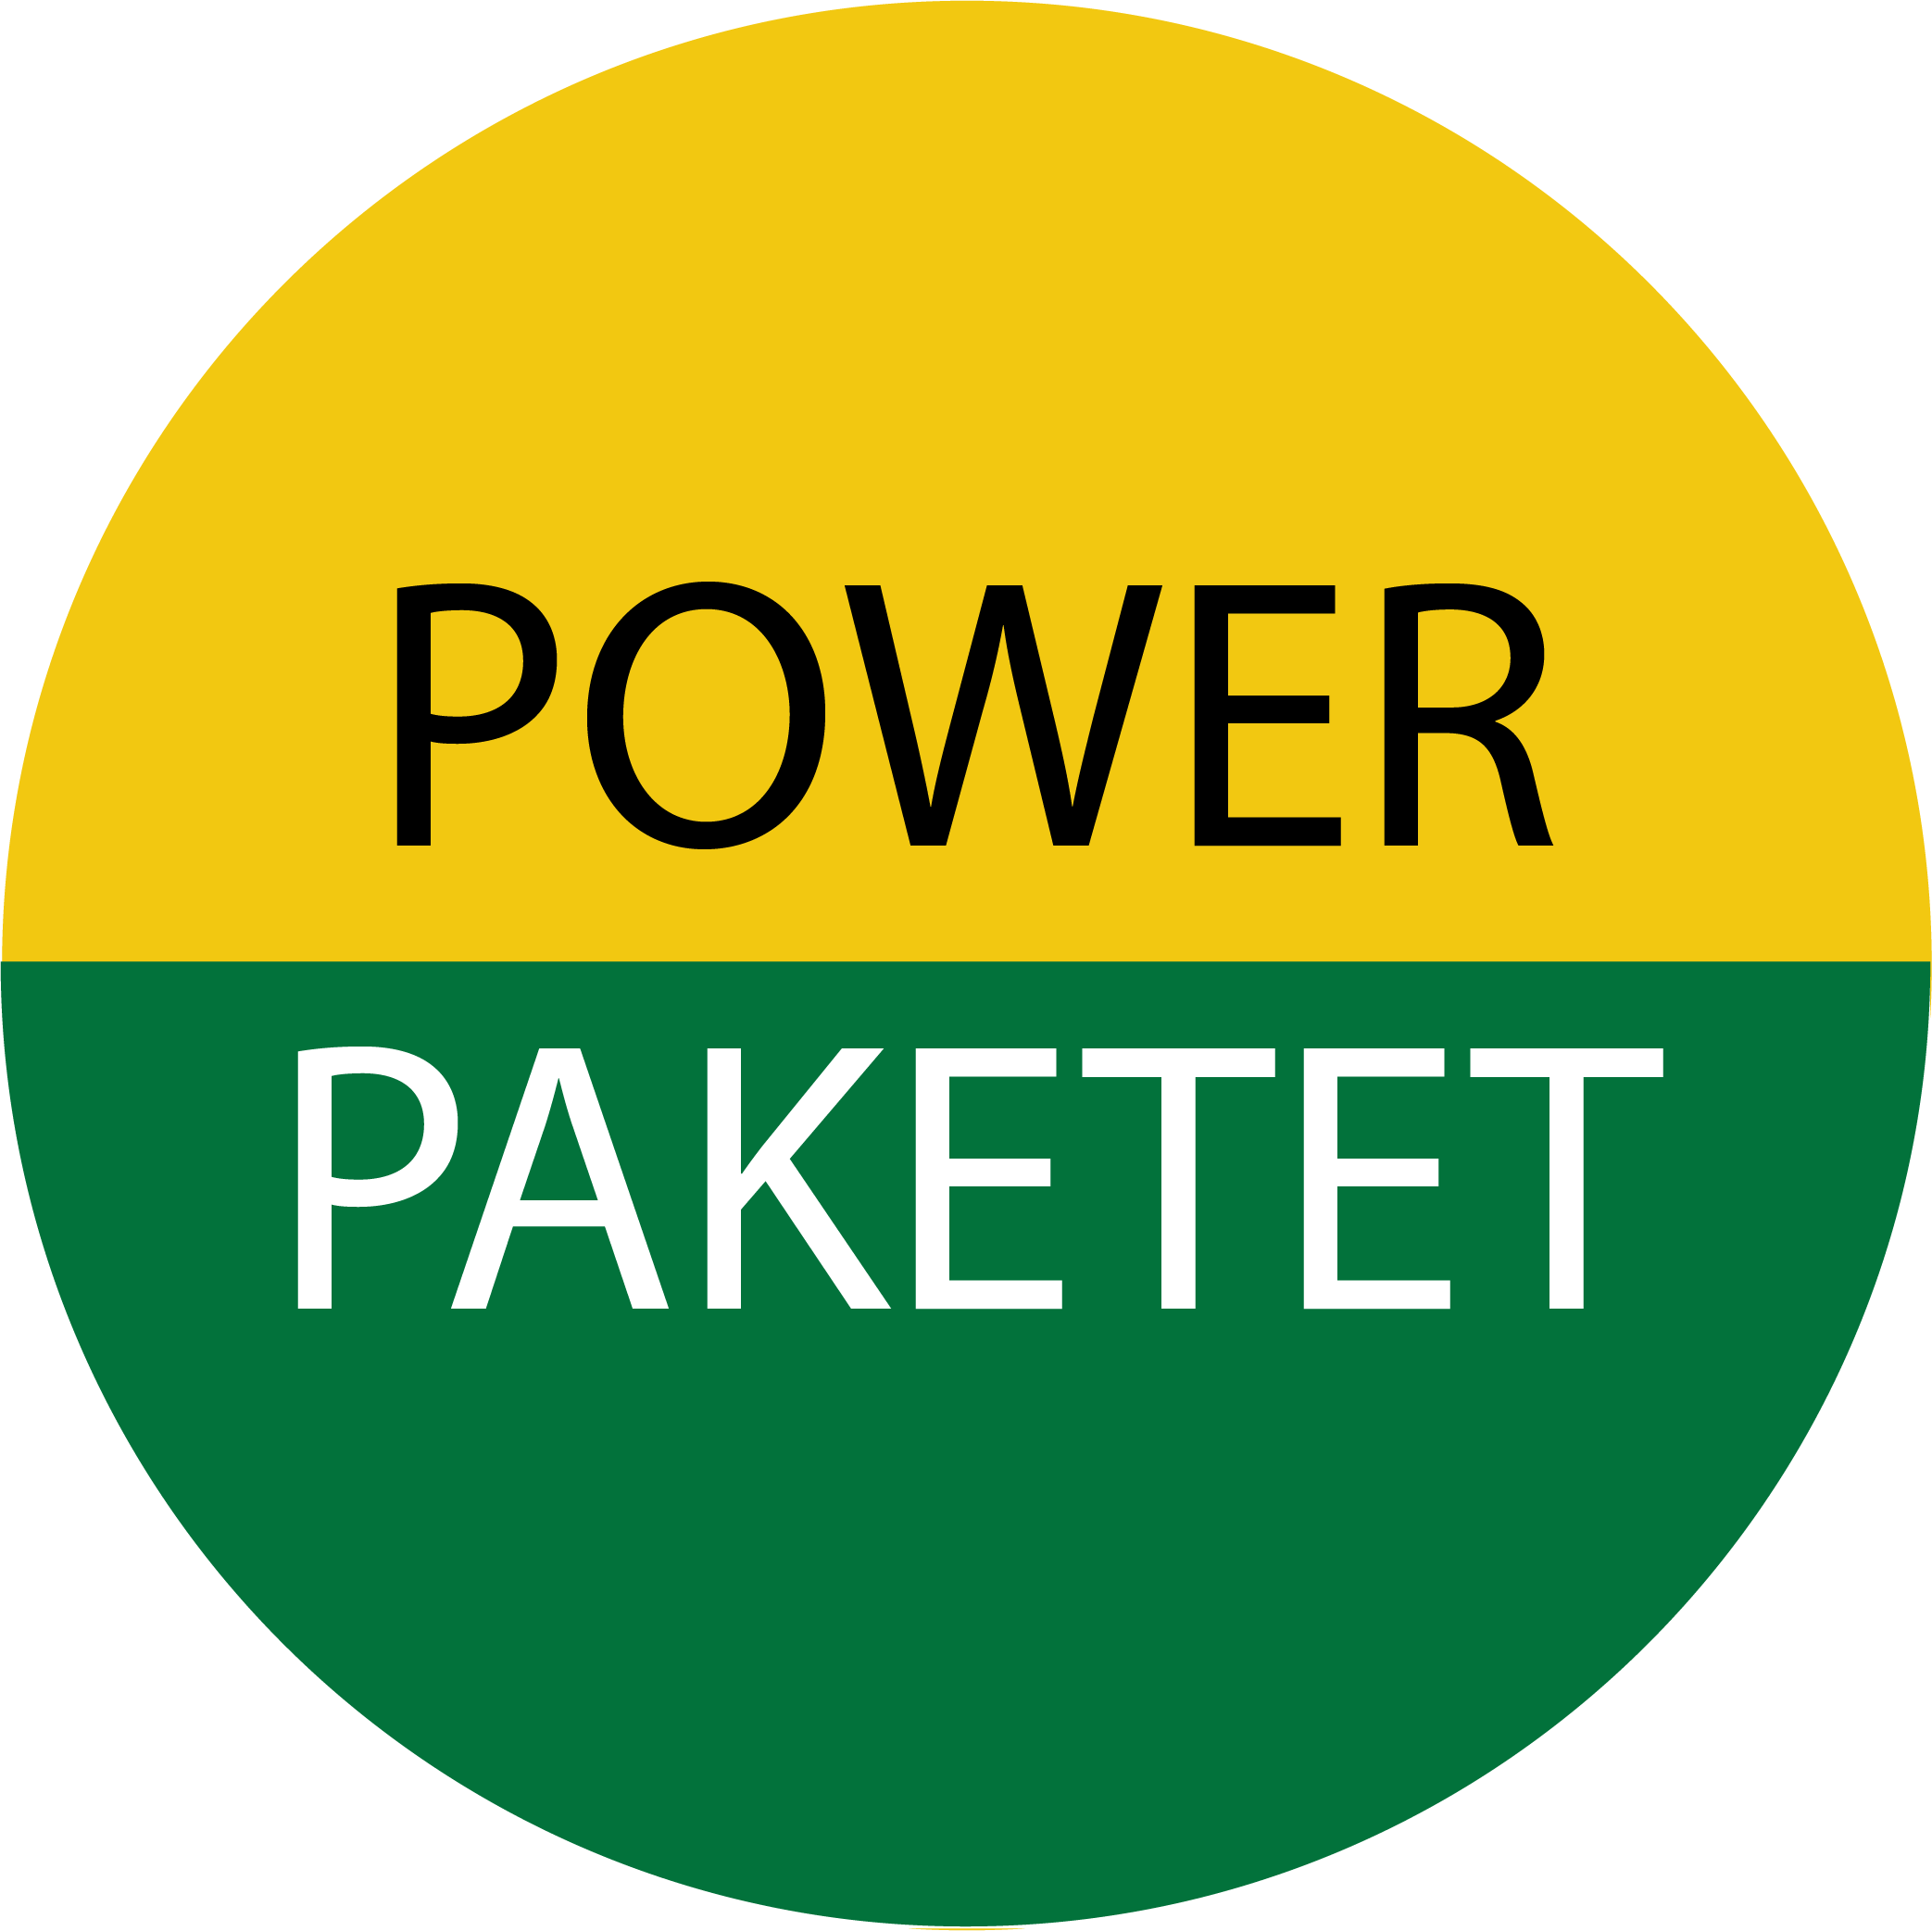 Powerpaketet